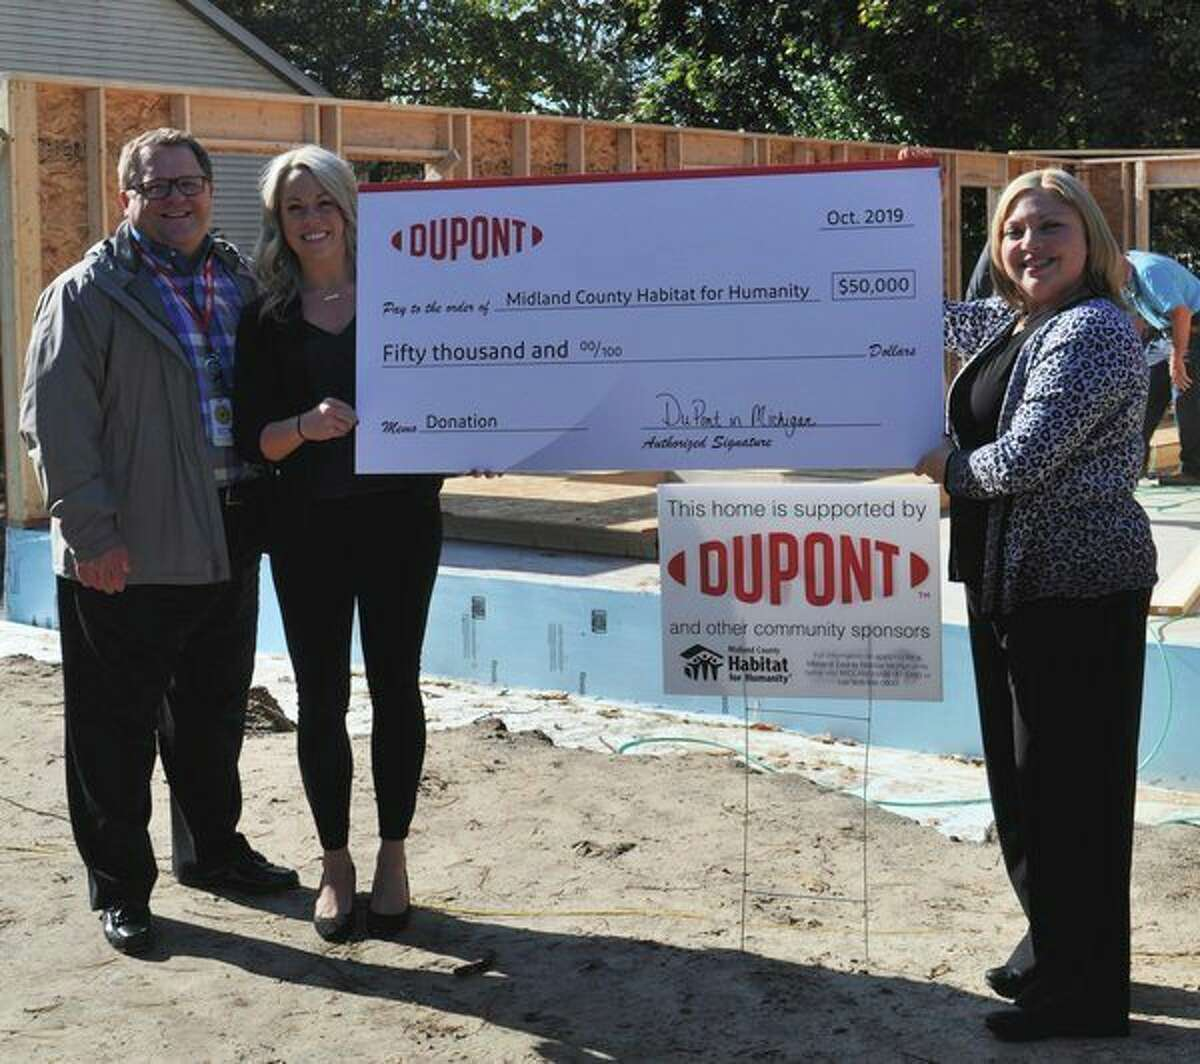 From left,Tim Lacey, DuPont Performance Building Solutions and Corian Design global vice president and general manager; Kayley Lyons, DuPont Community Relations and Internal Communications manager; and Jennifer Chappel, Midland County Habitat for Humanity CEO and president, pose for a photo to honor DuPont's awarding of a $50,000 grant to fund a Habitat building project. (Photo provided/Amanda King).